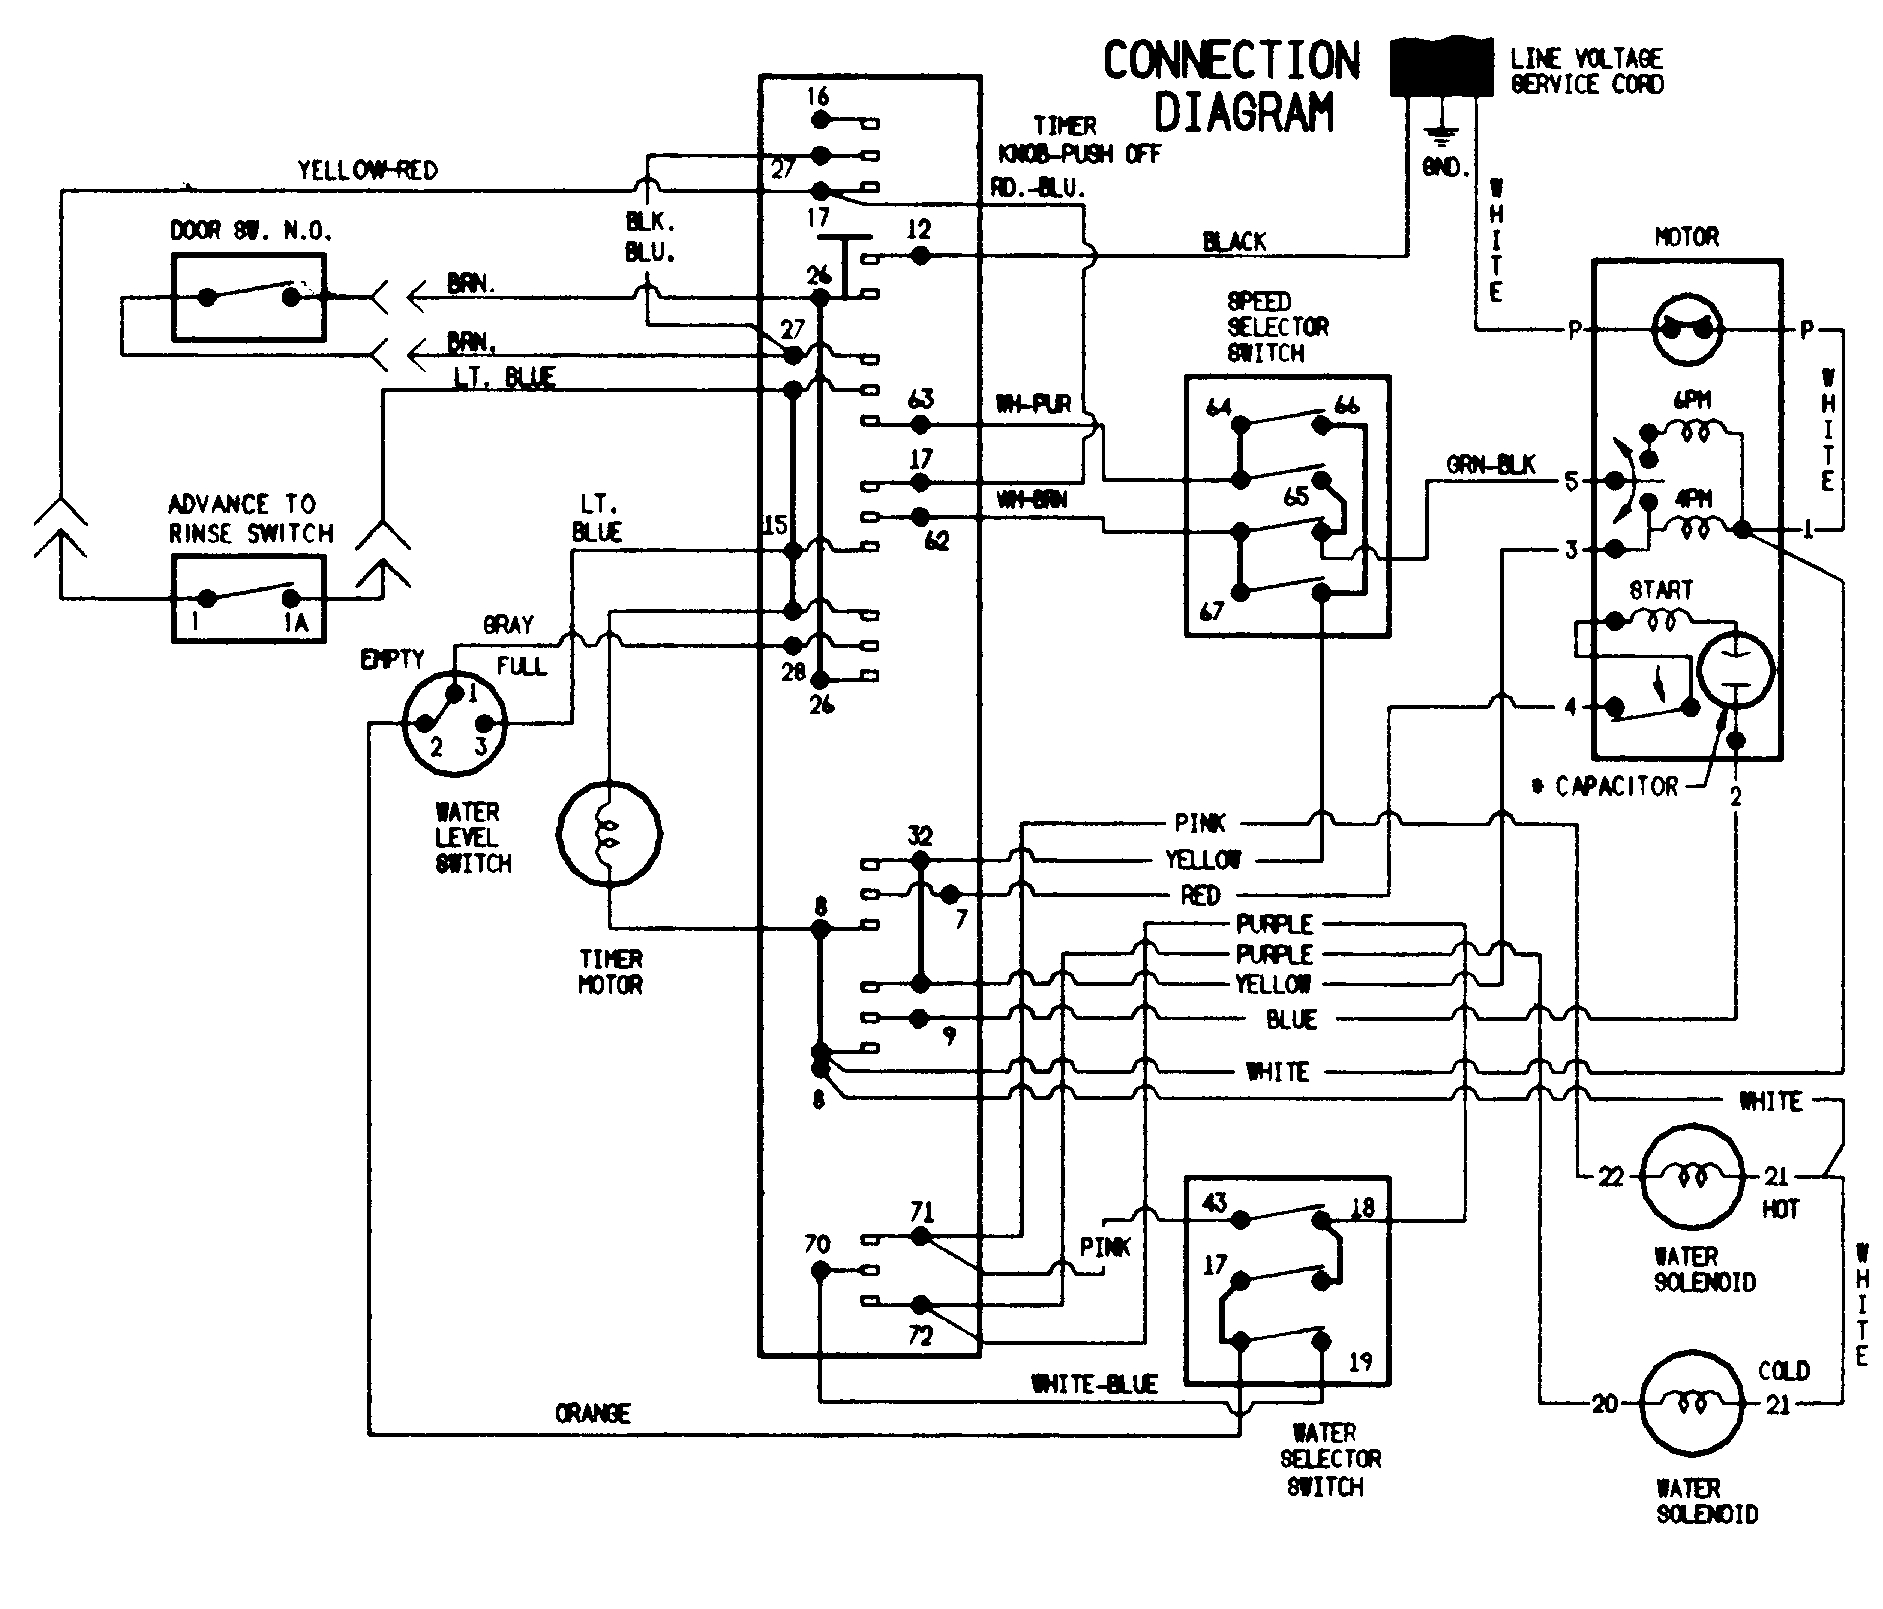 maytag washer wiring schematic